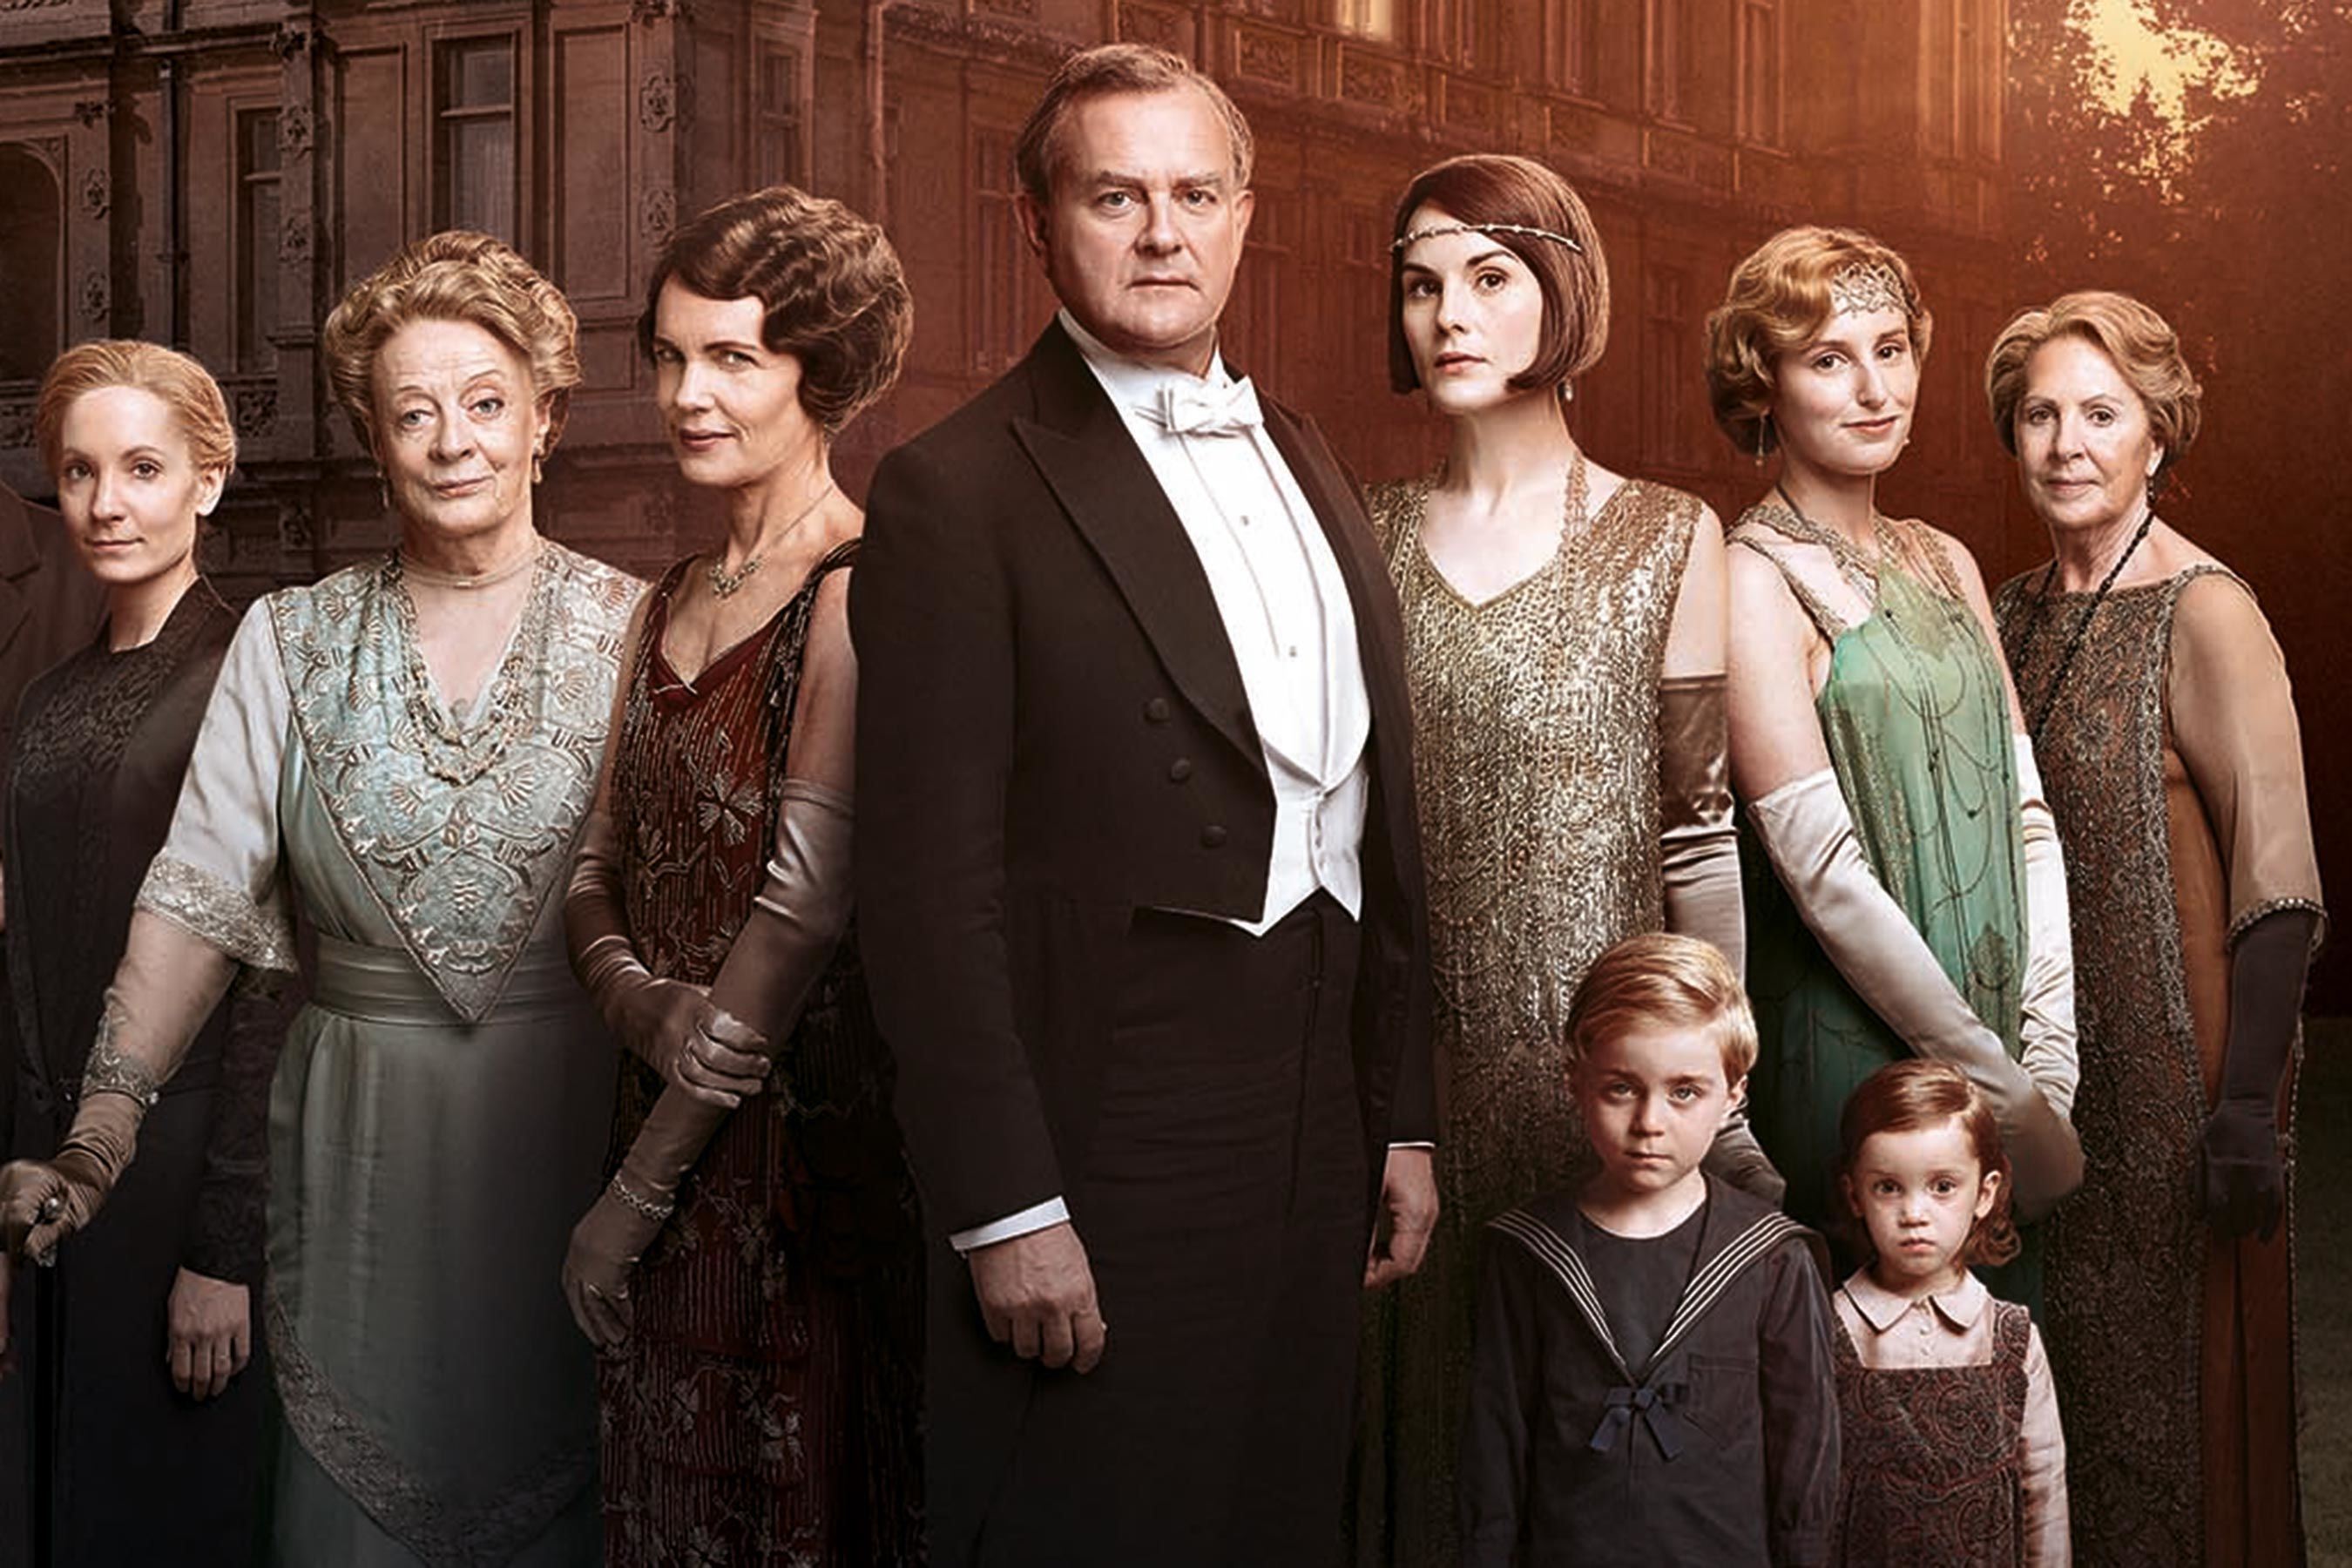 Violet Crawley Loves Memes? Here's How Co-Stars Got Maggie Smith Laughing on the <i>Downton Abbey</i> Set